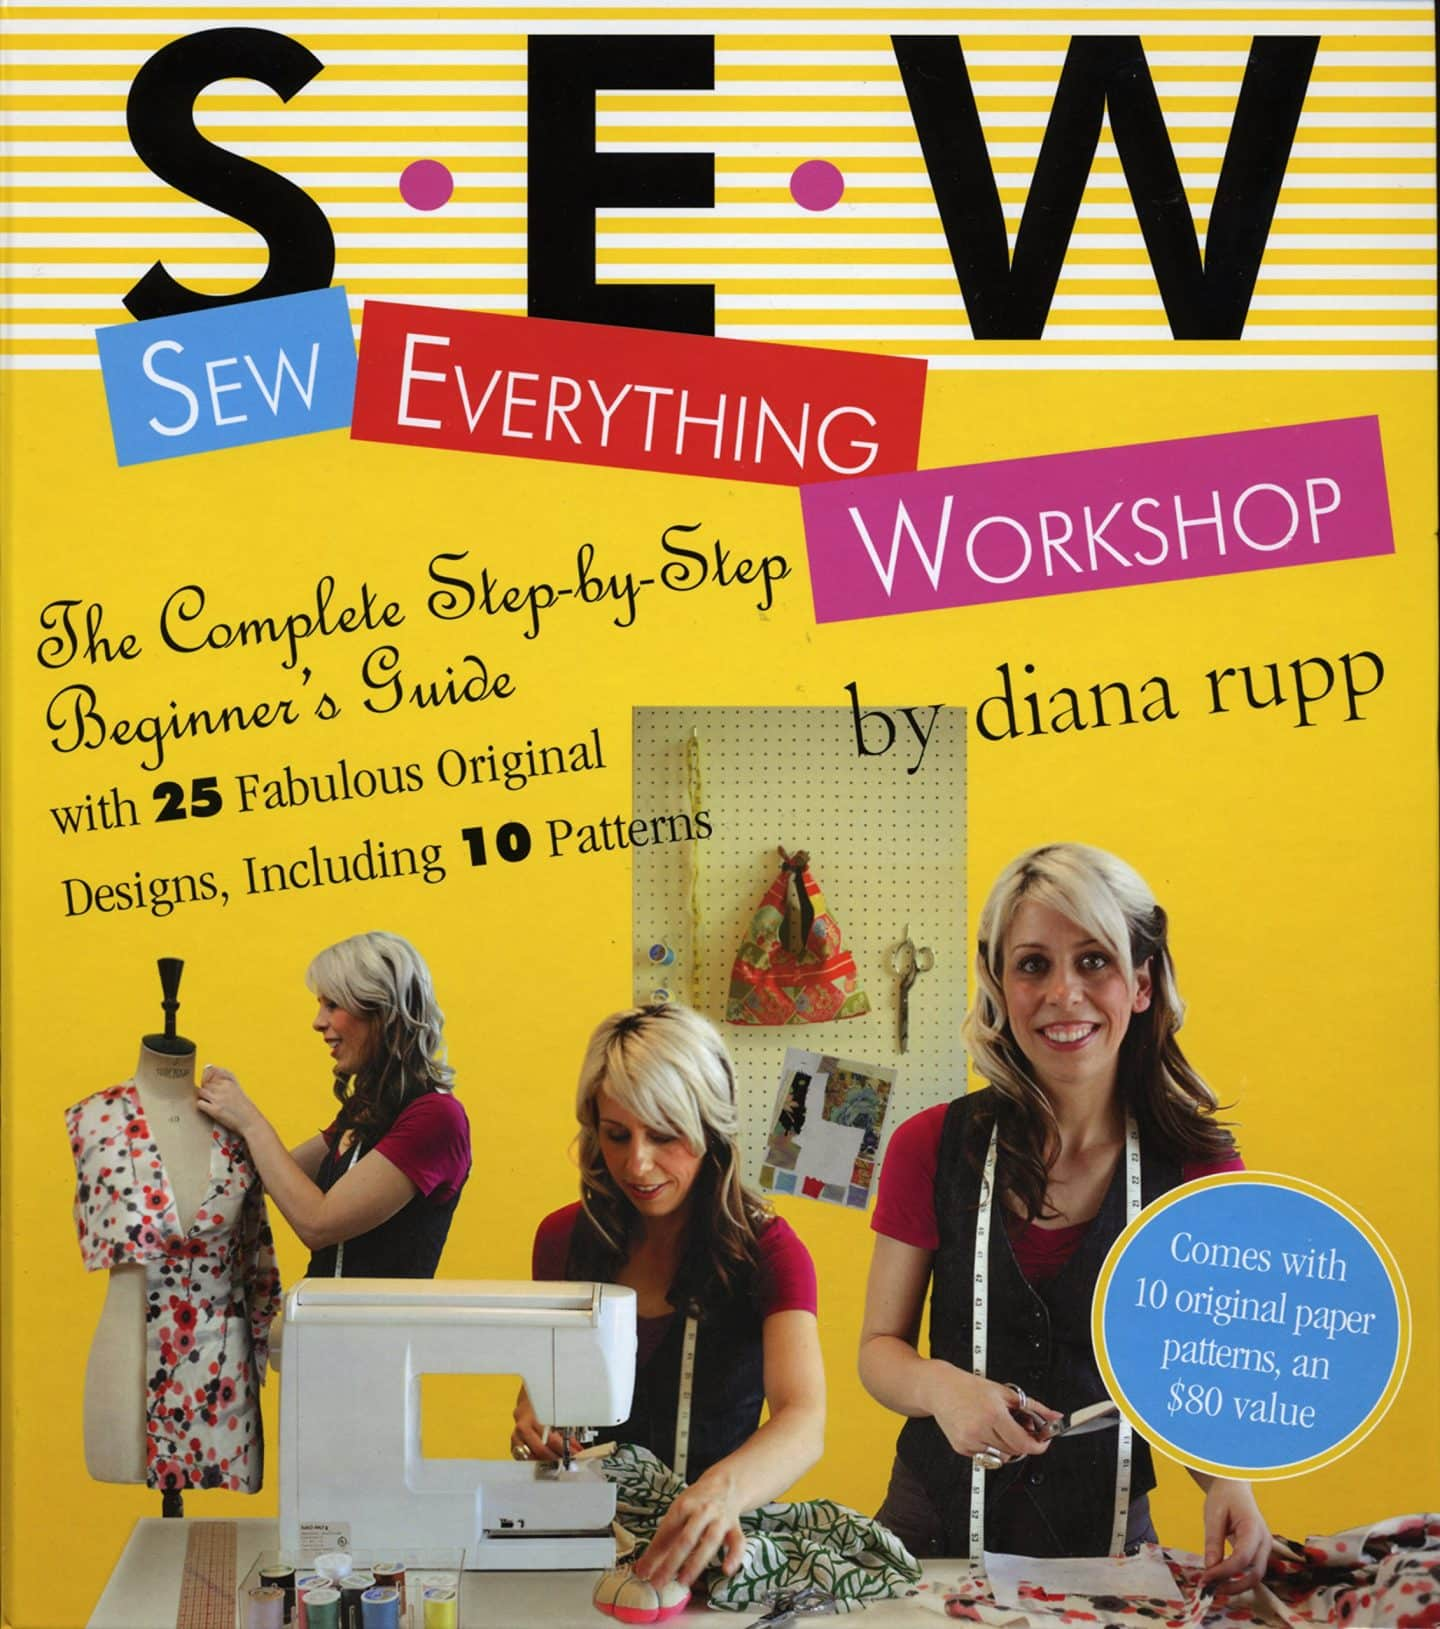 Image of the cover of the book Sew Everything Workshop by Dianna Rupp